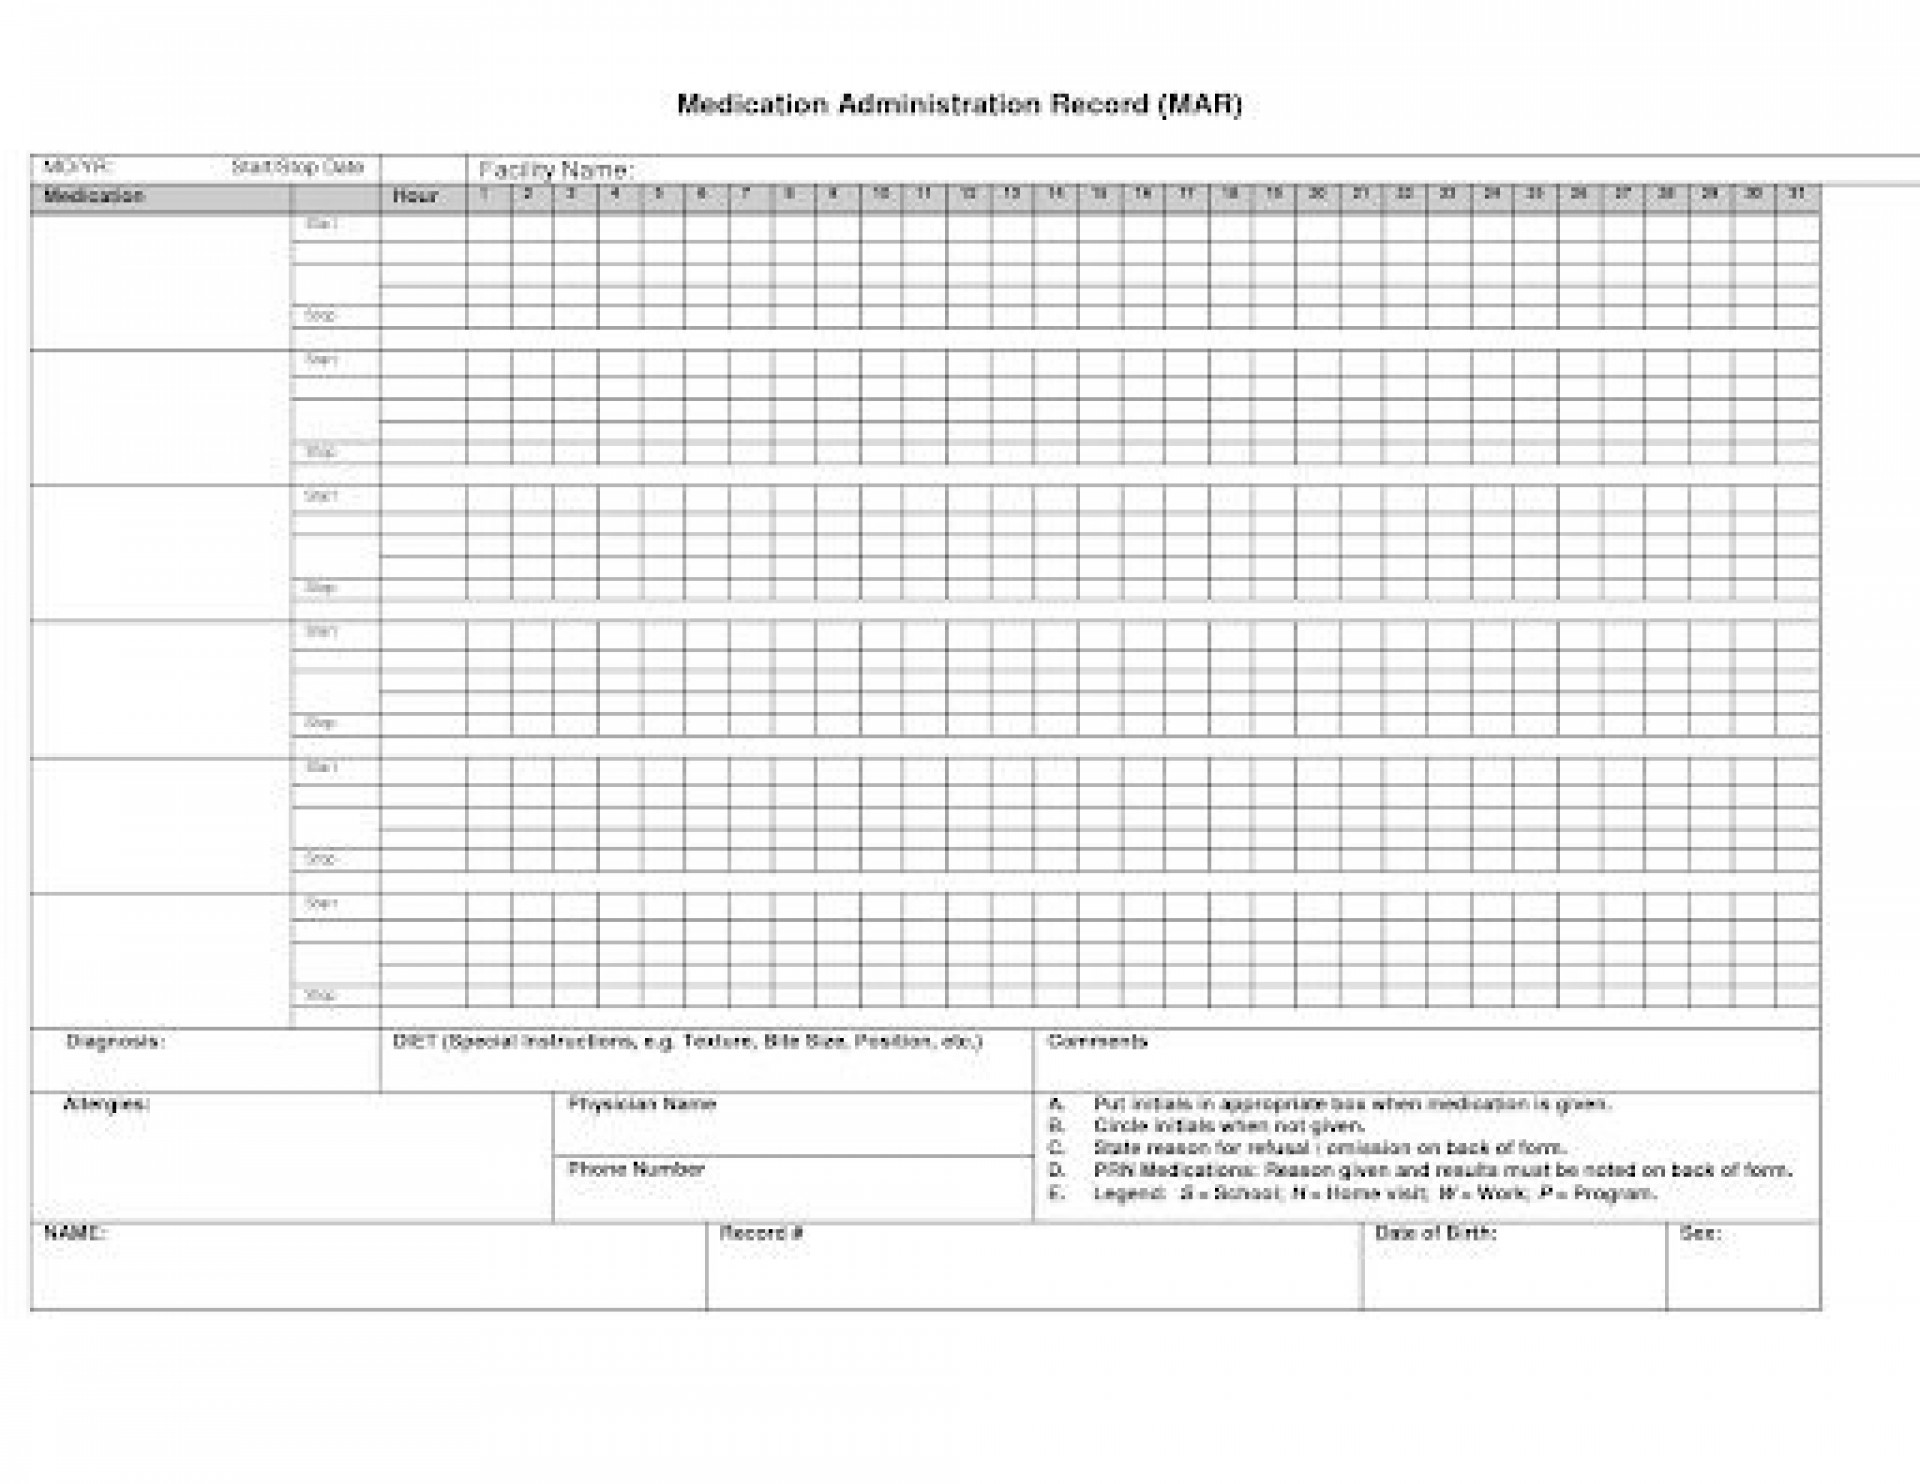 008 Astounding Medication Administration Record Template Example  Download For Home Use1920